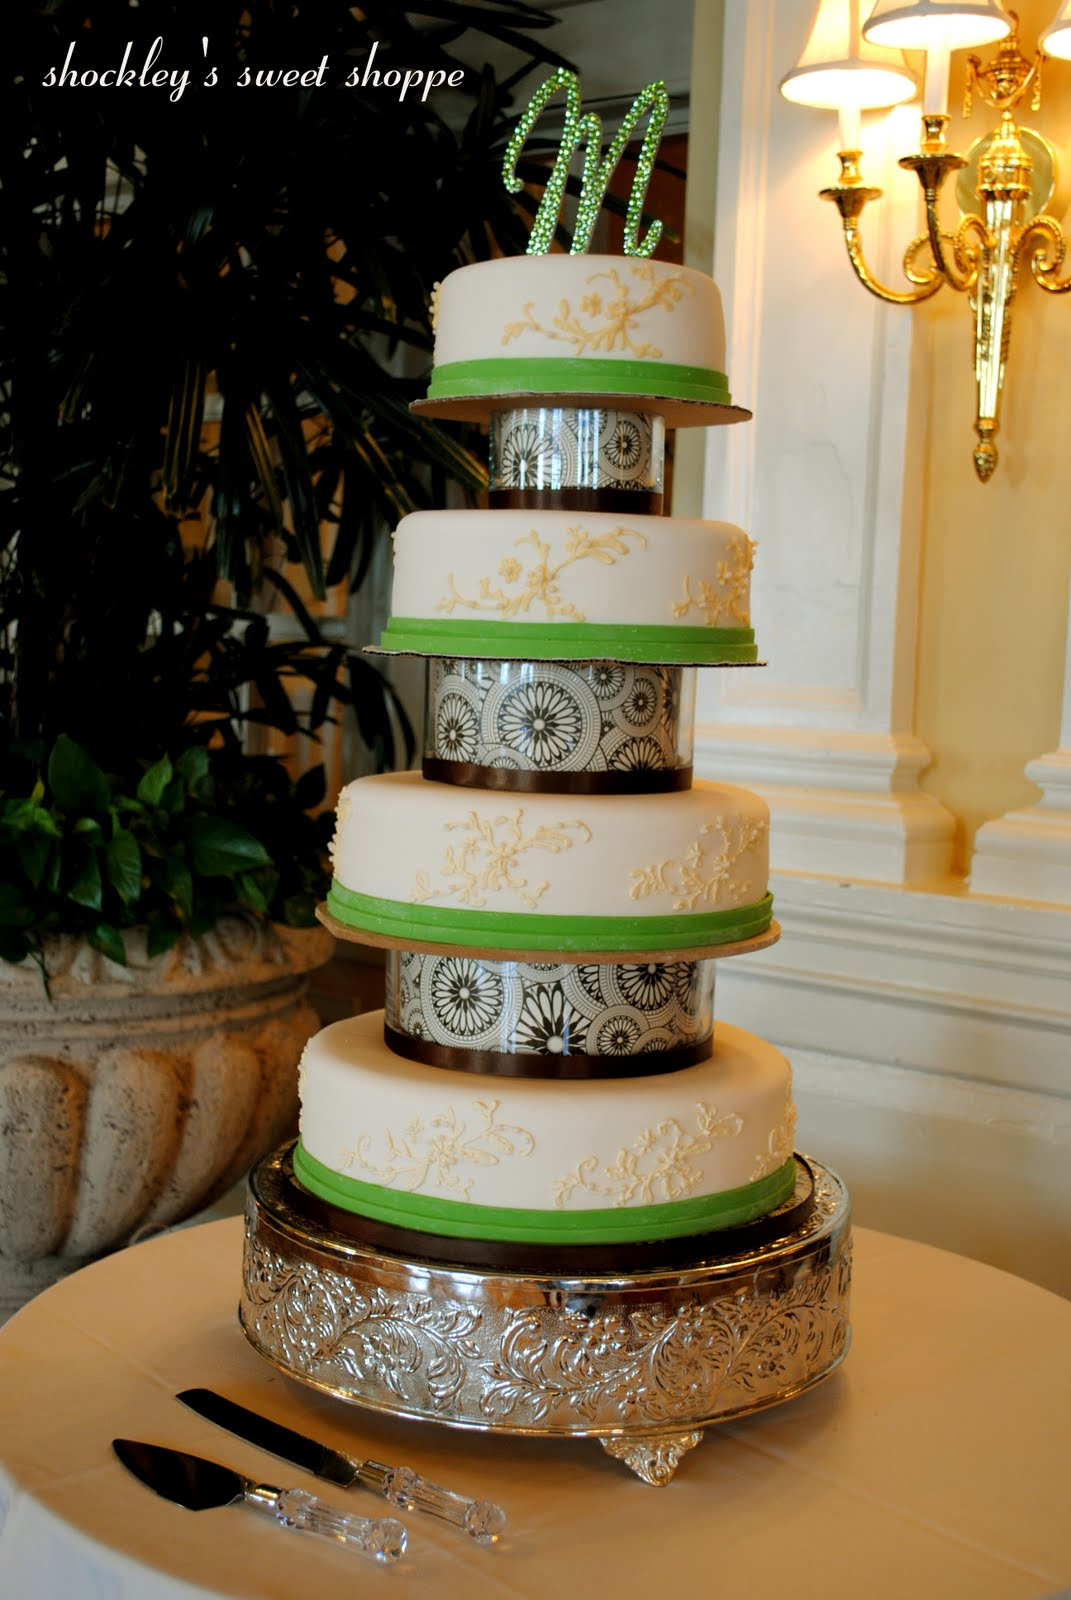 This amazing wedding cake for